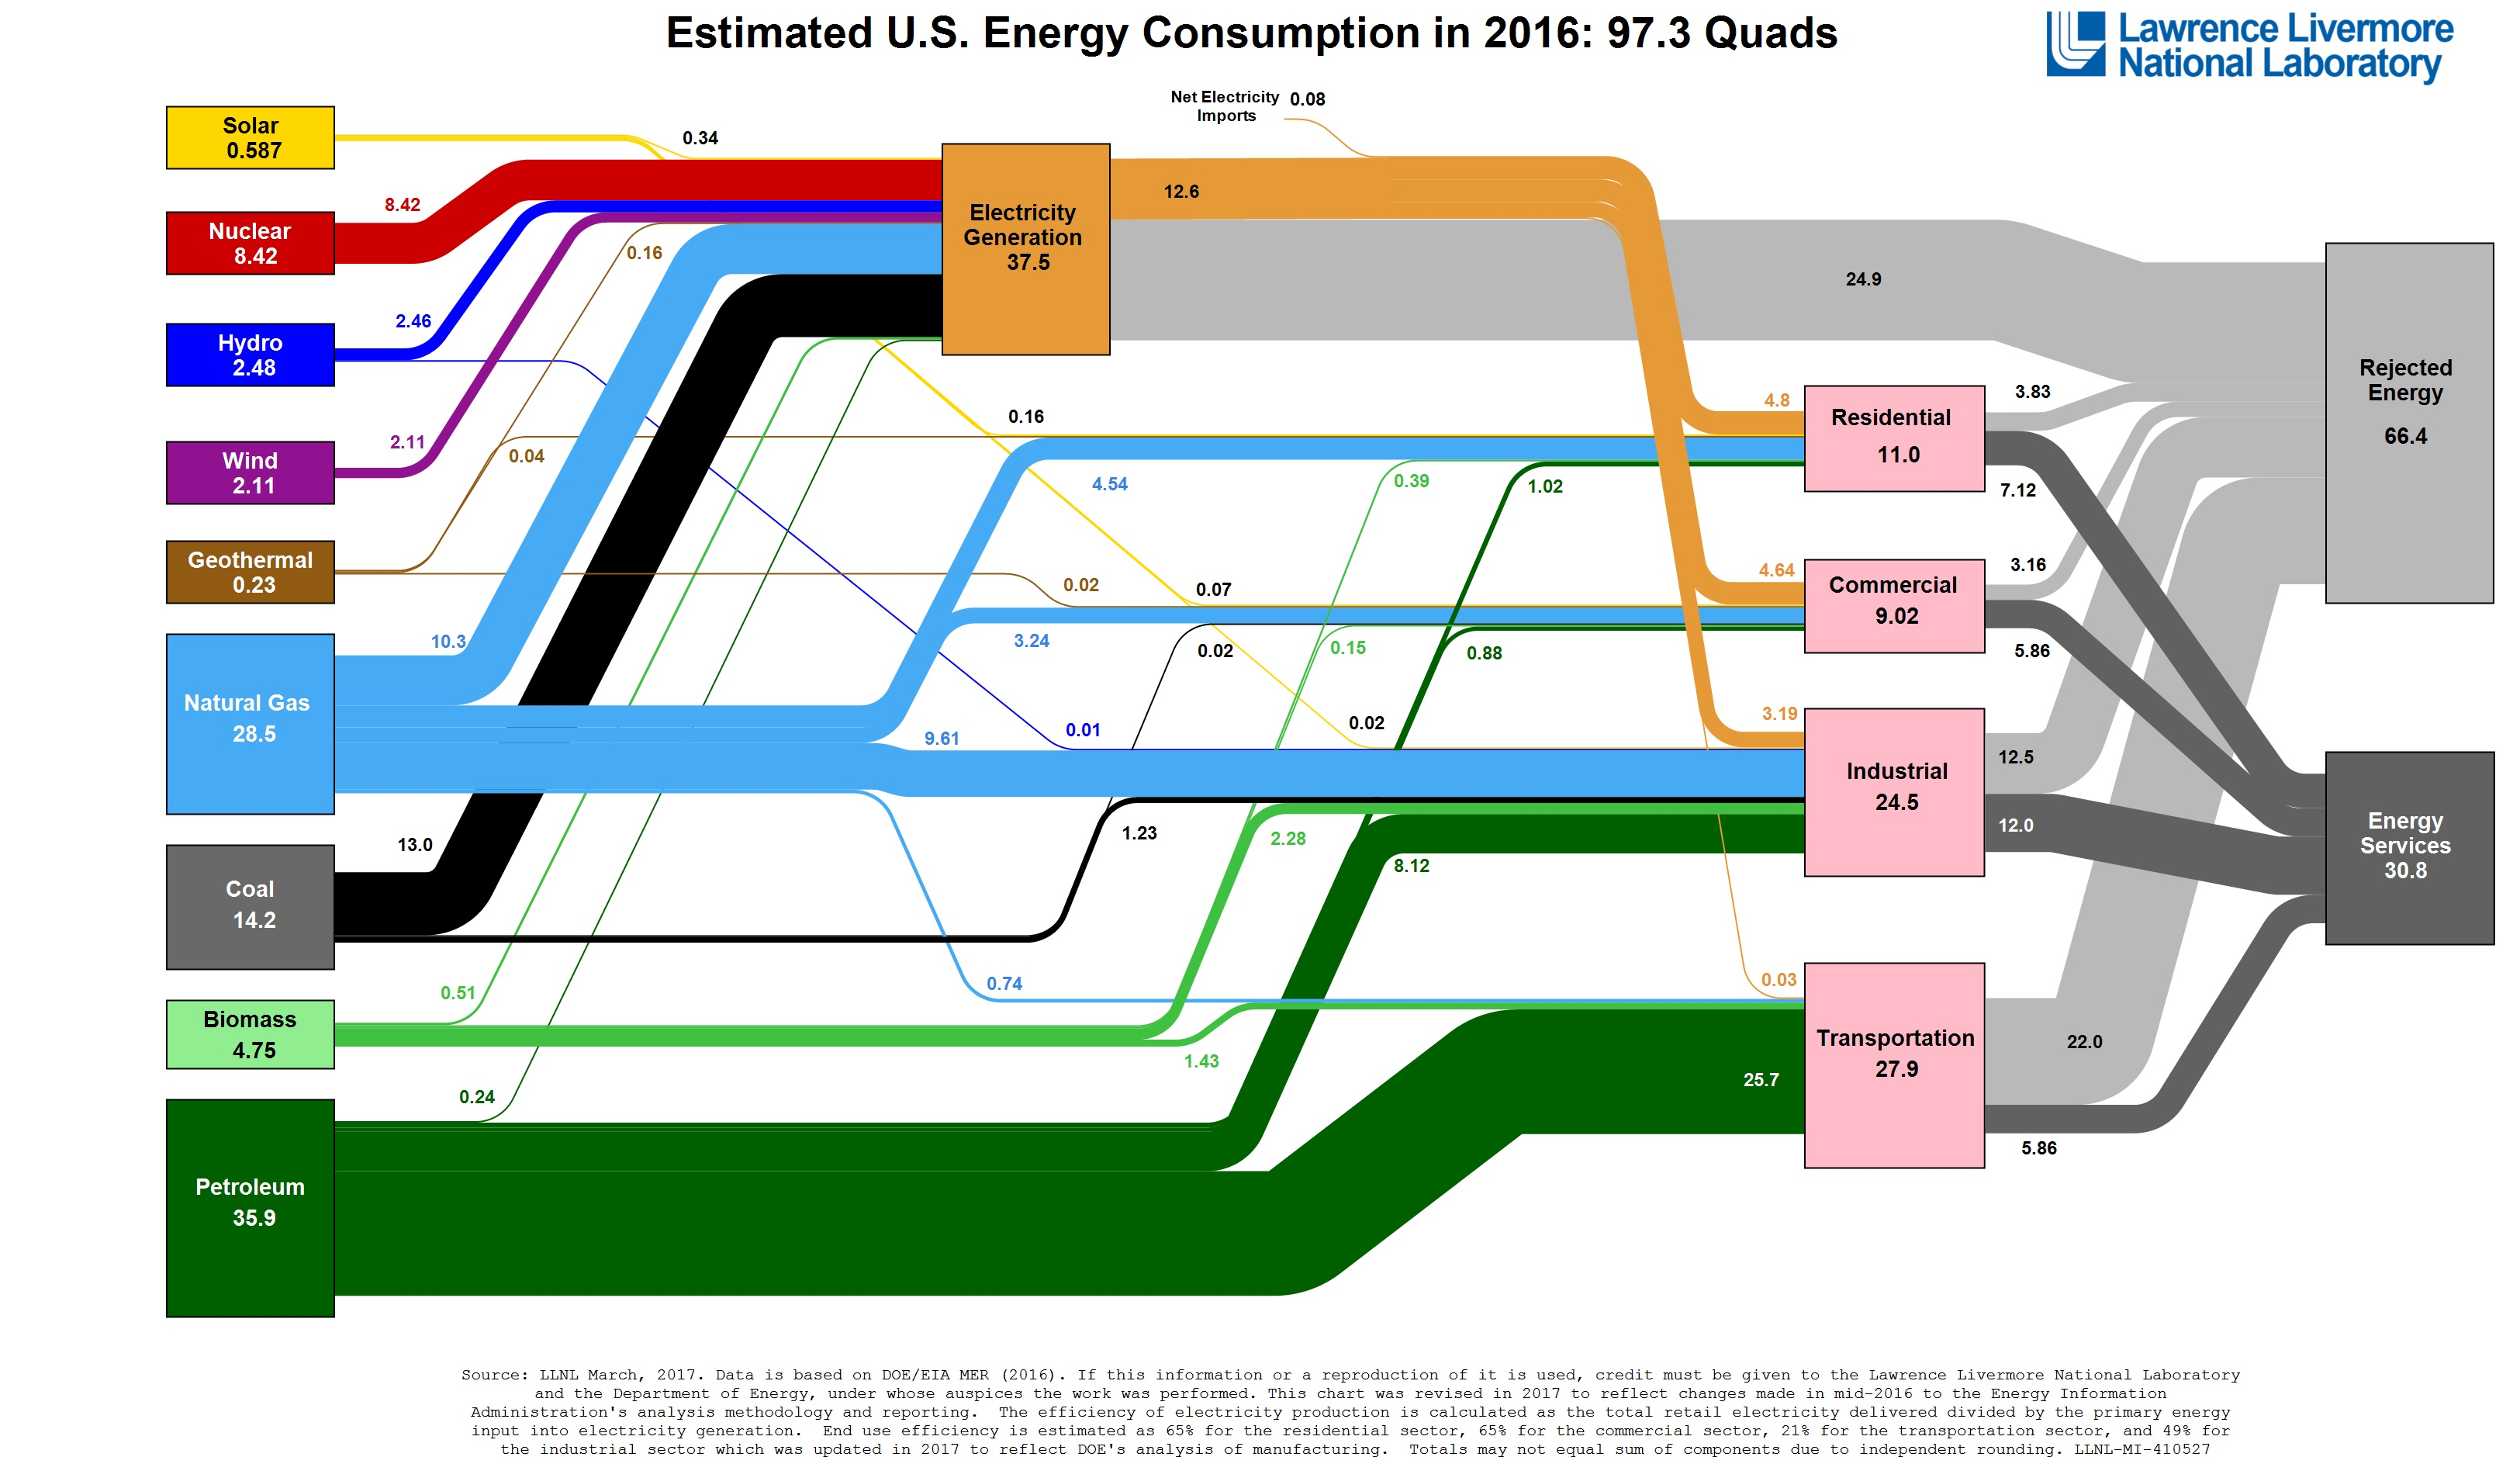 Estimated energy consumption in the United States in 2016